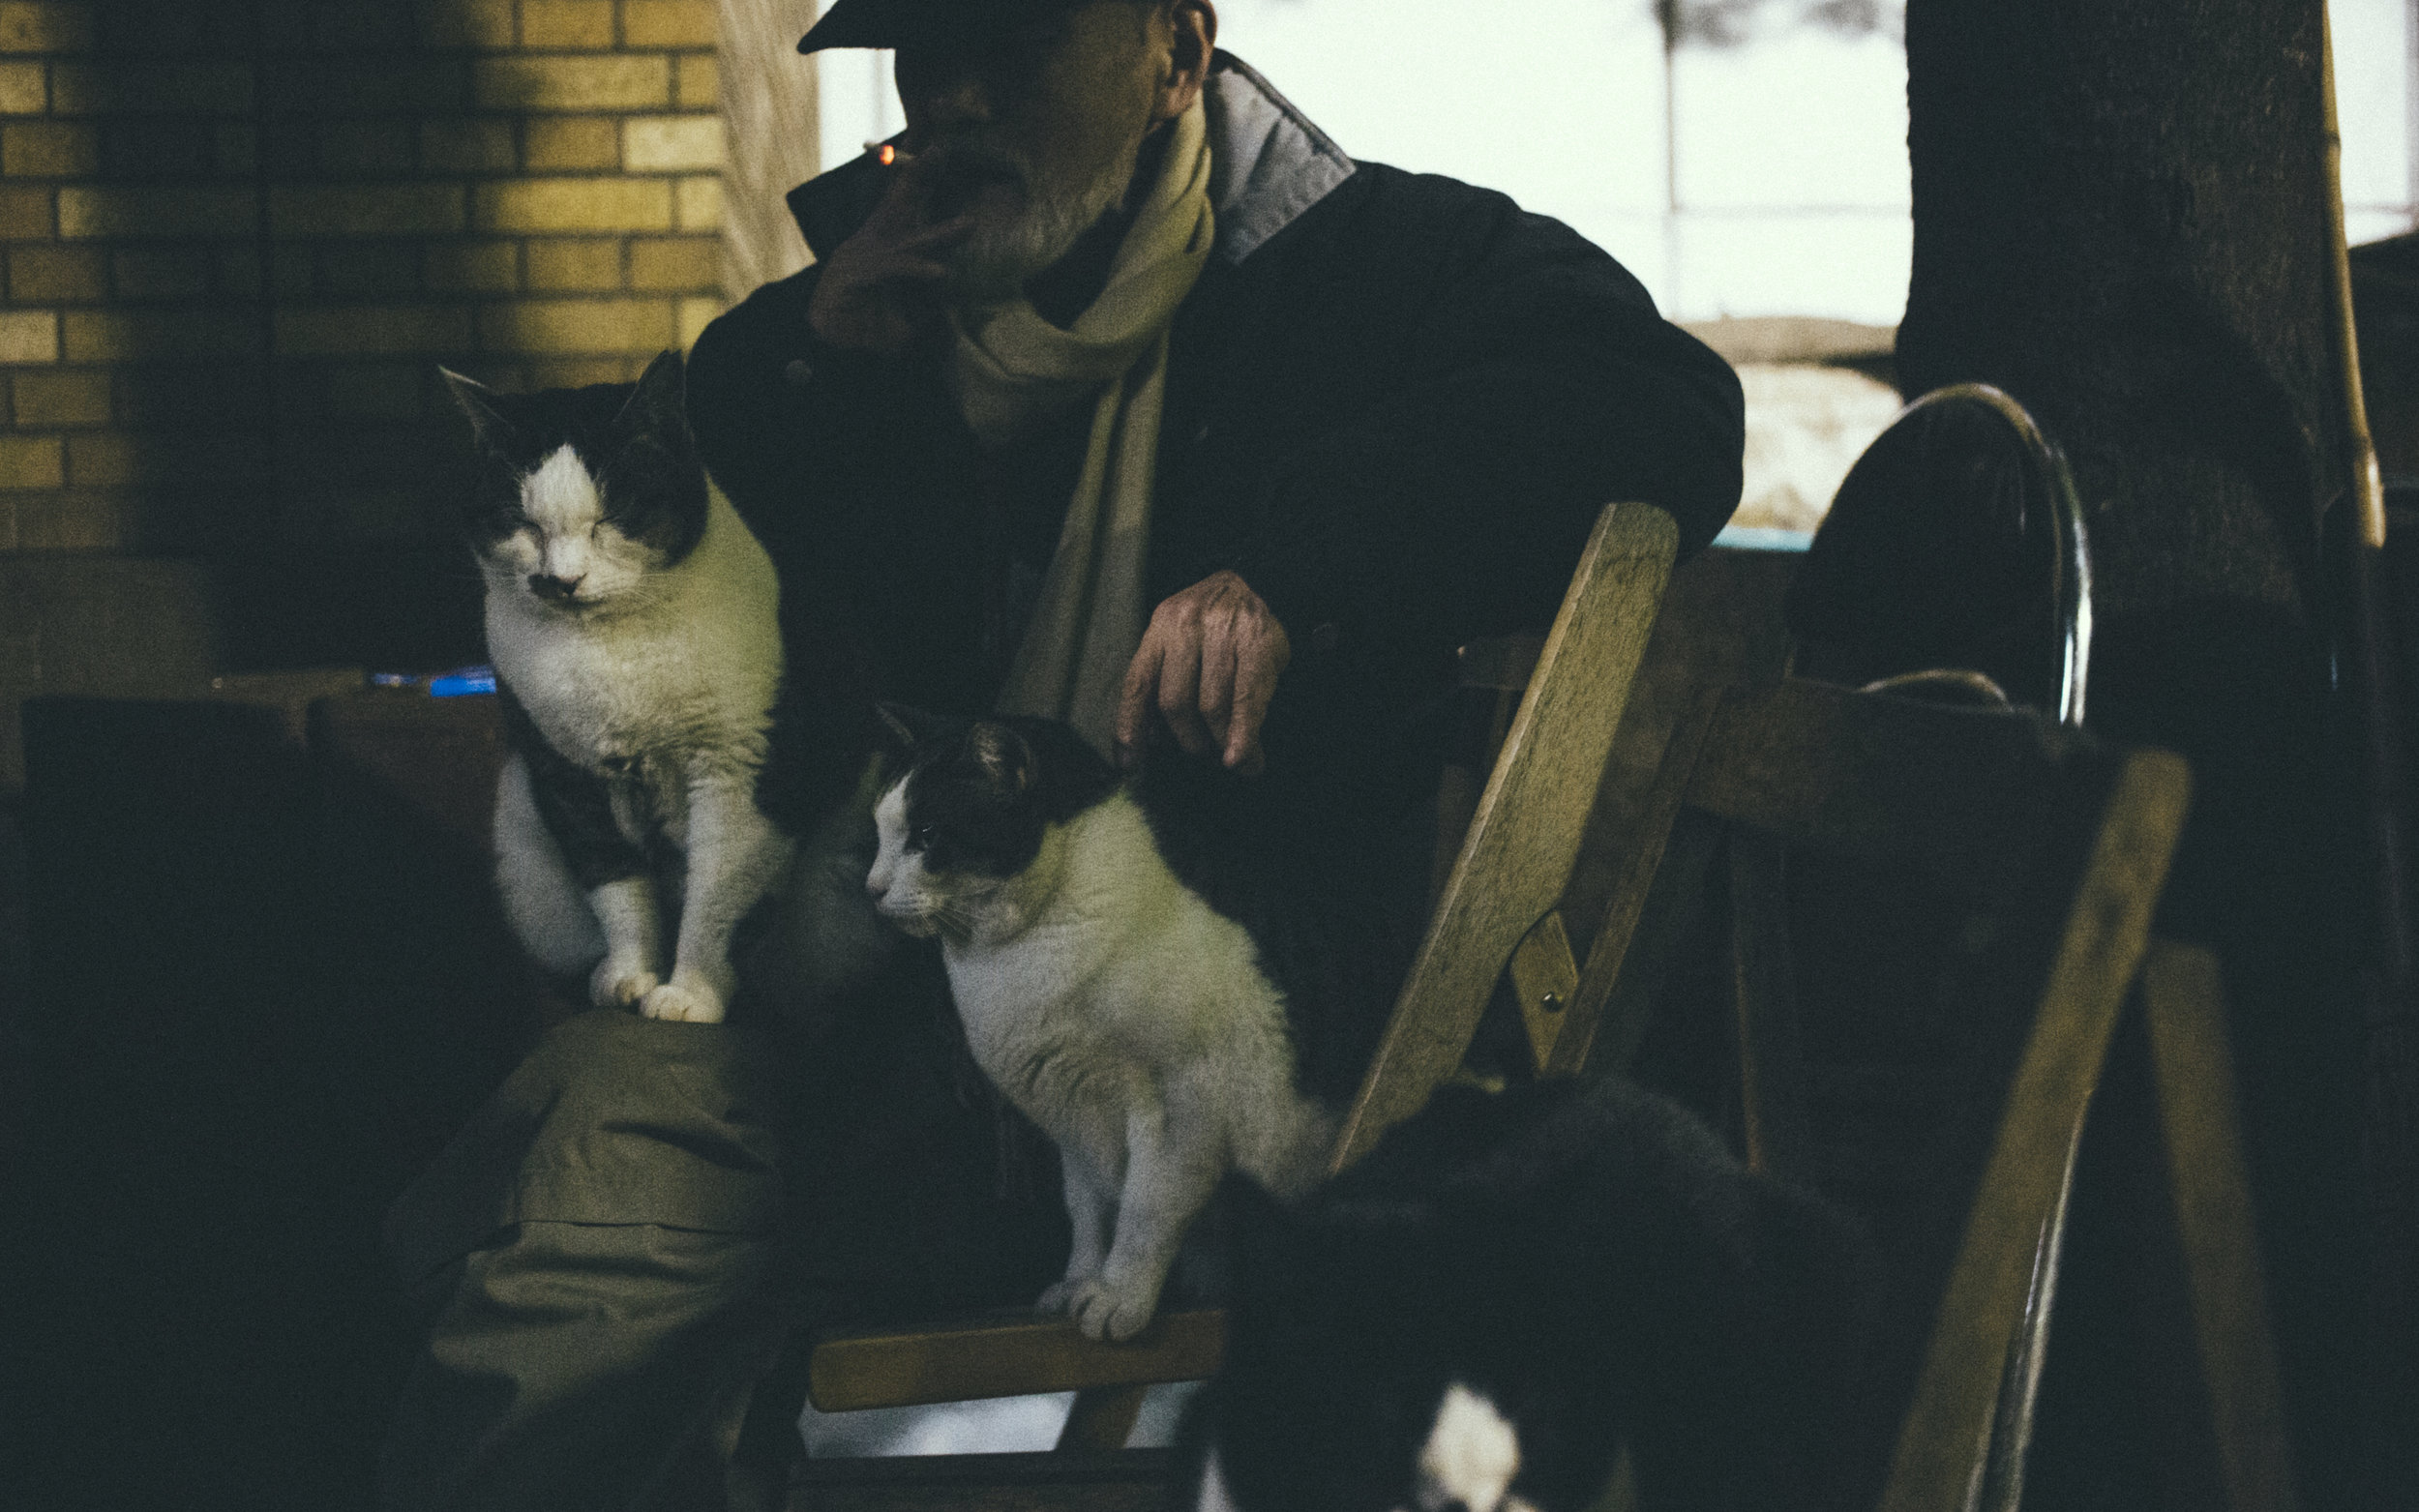 To Ojii-san, the cats probably are closer to him than his family is. Or maybe there's another story behind it.